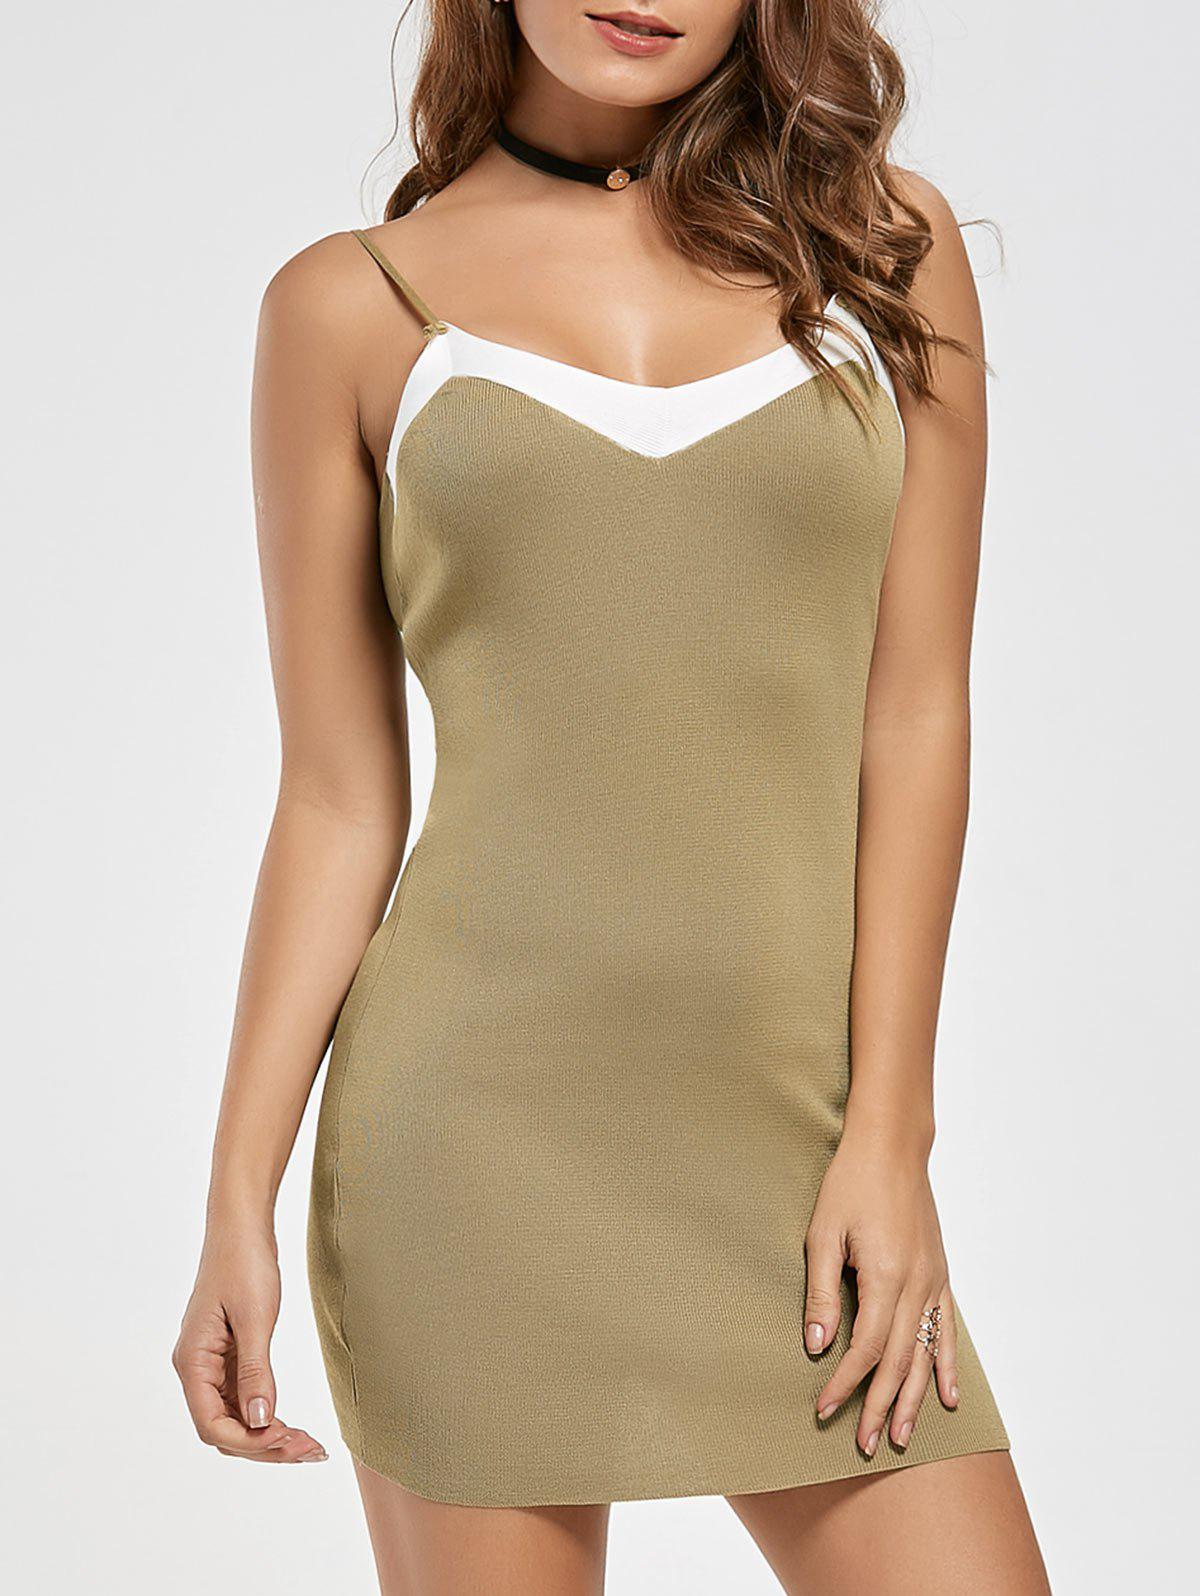 Bodycon Two Tone Knit Slip Dress - Kaki ONE SIZE